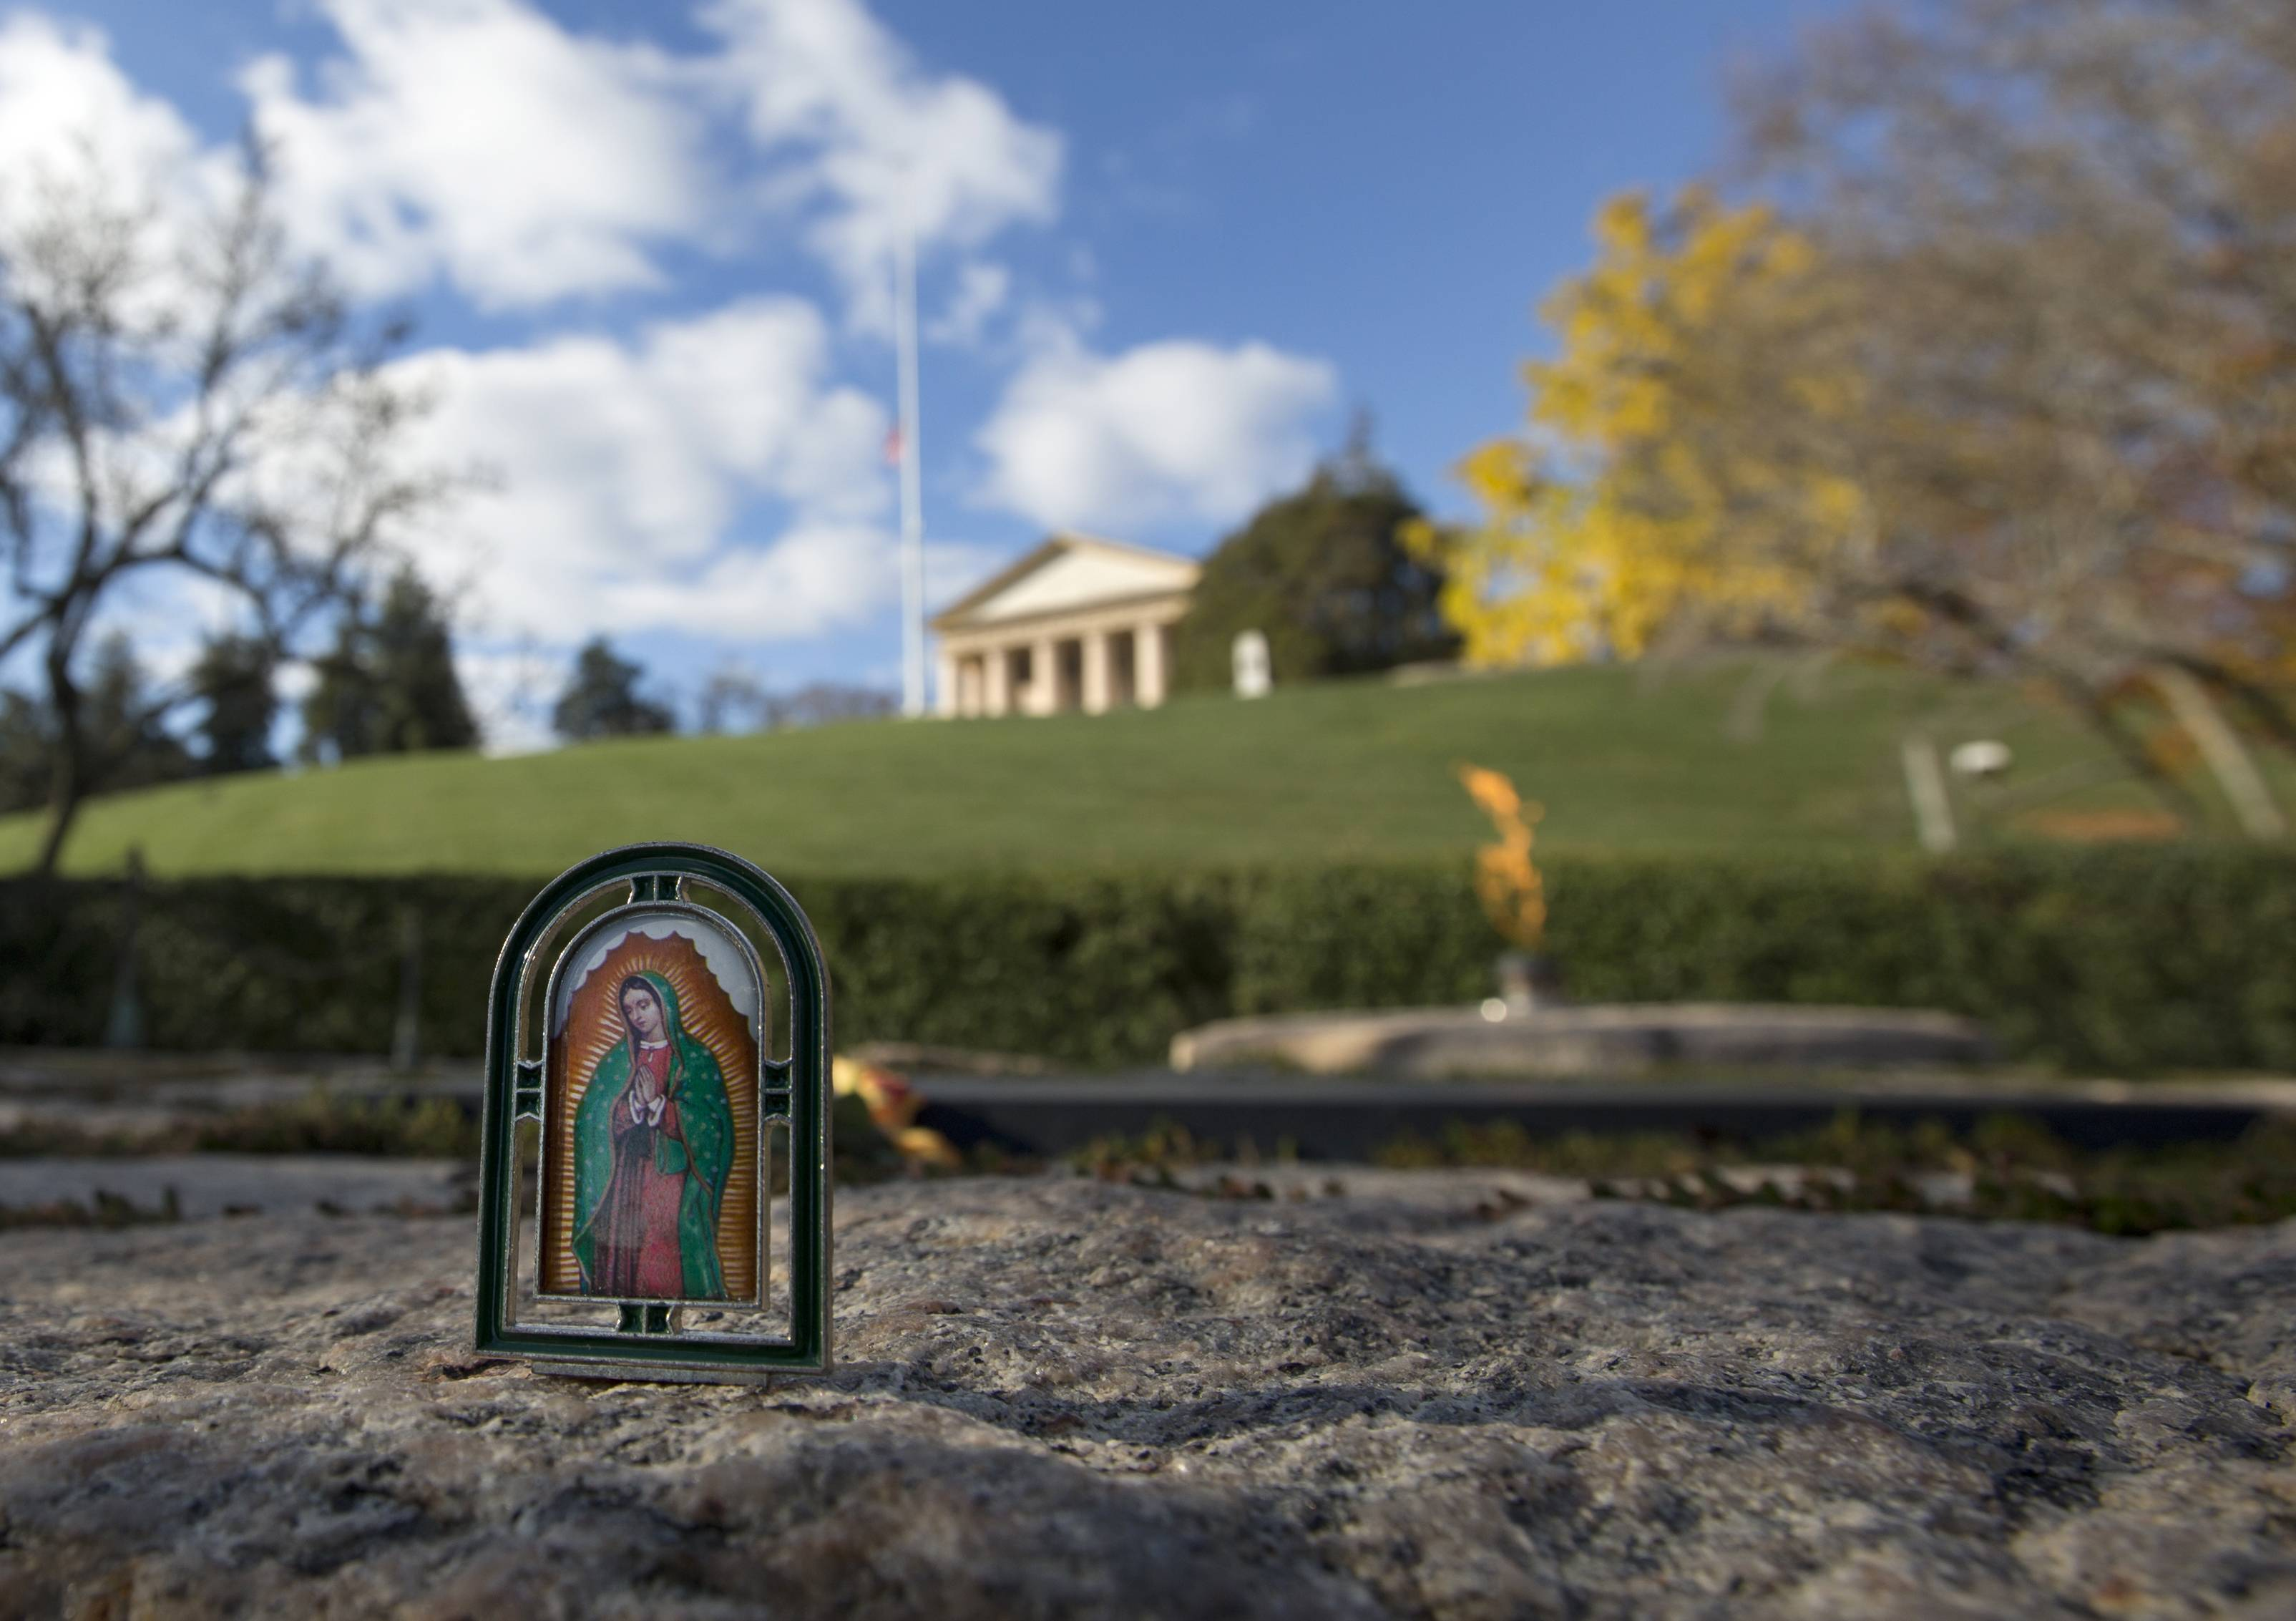 A small image of the Blessed Virgin Mary stands on the stone surrounding the eternal flame and grave site of President John F. Kennedy at Arlington National Cemetery in Arlington, Va. The Arlington House, the Robert E. Lee Memorial sits at the top of the hill overlooking the grave site.